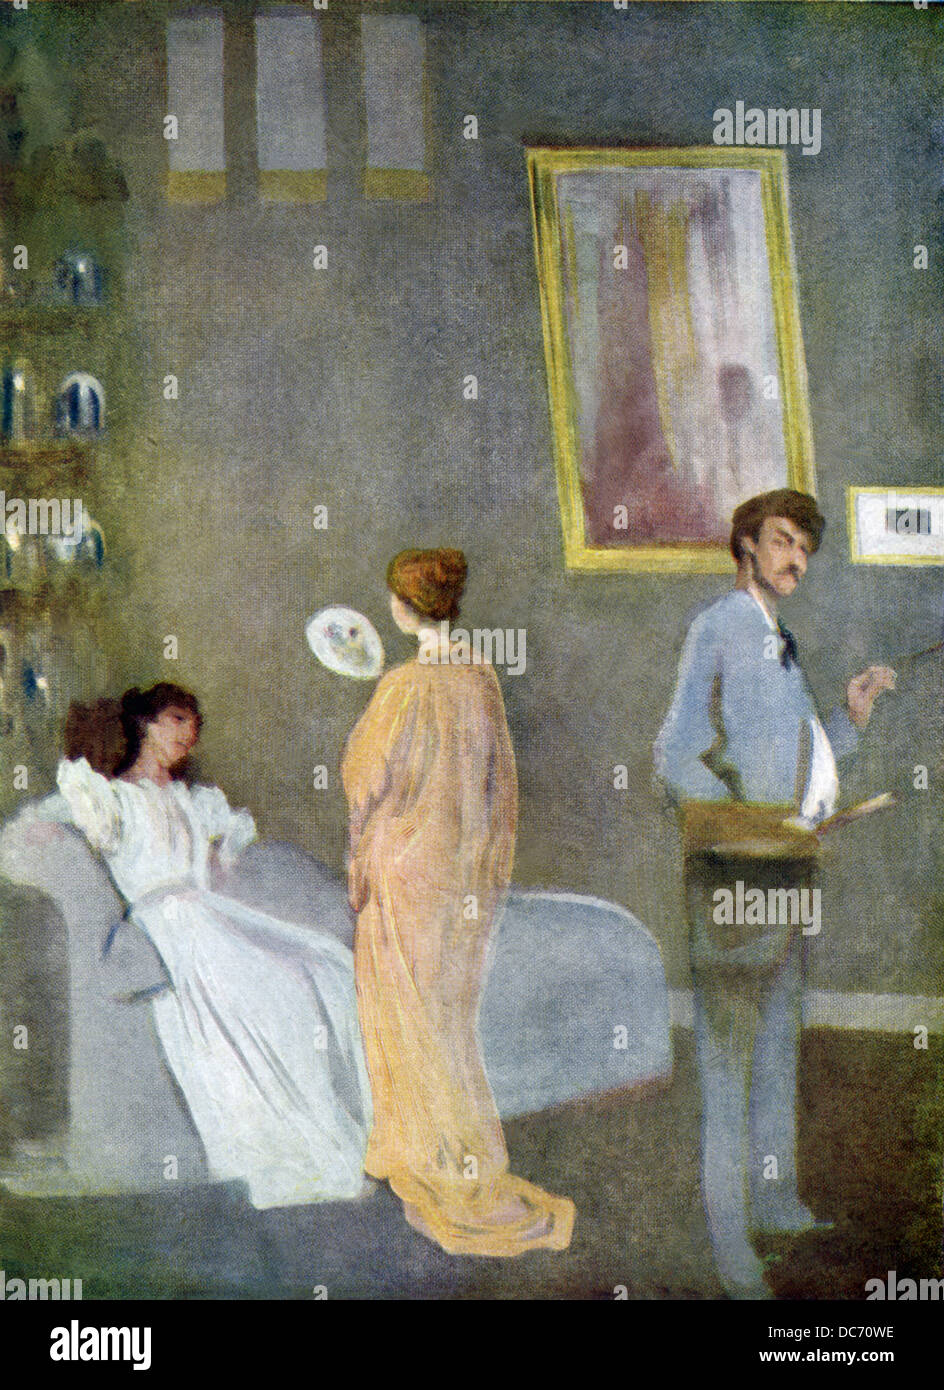 This painting, titled The Artist's Studio, dates to 1865 when American artist James Whistler was in London. - Stock Image